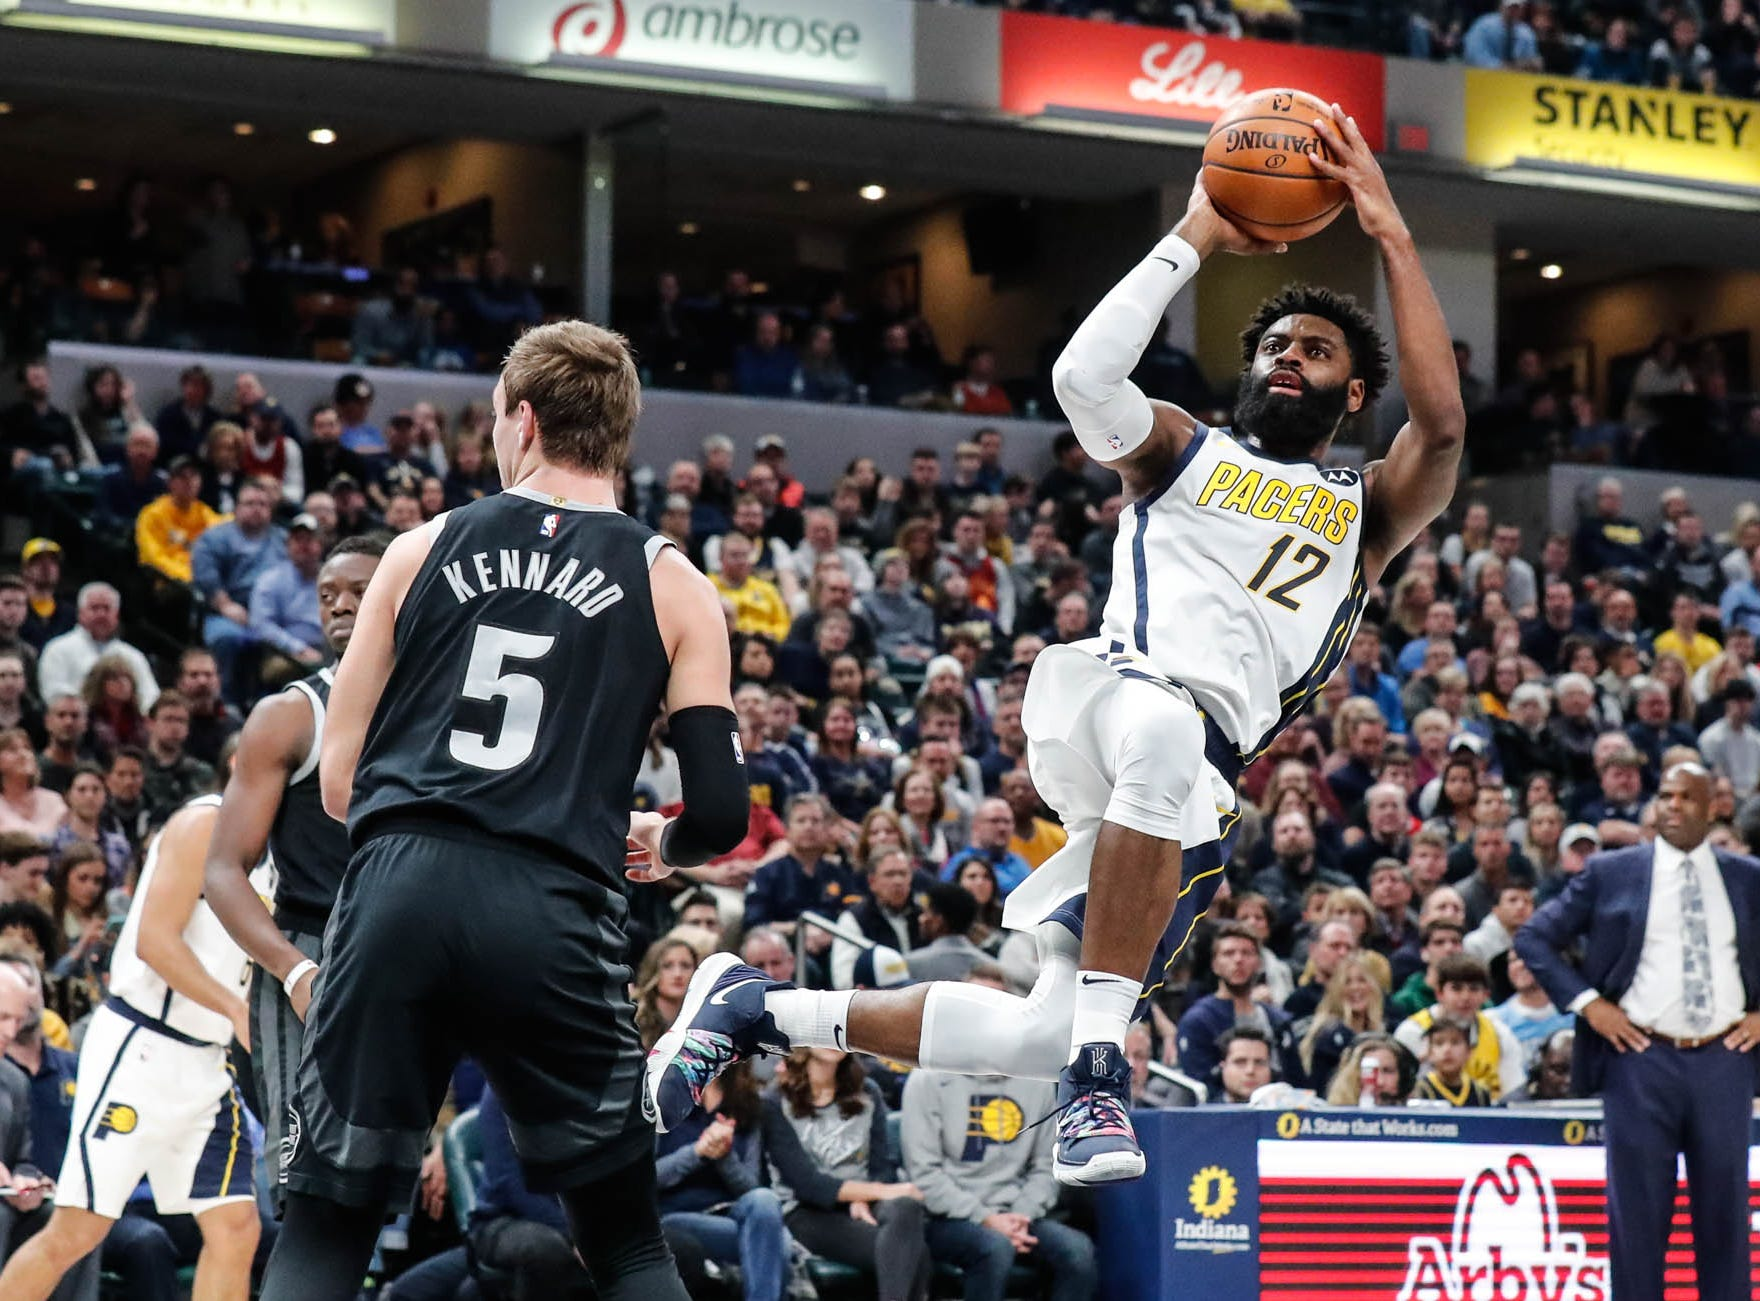 Indiana Pacer's guard Tyreke Evans (12) shoots a wacky jump shot as the whistle blows during a game between the Indiana Pacers and the Detroit Pistons at at Bankers Life Fieldhouse in Indianapolis on Friday, Dec. 28, 2018.